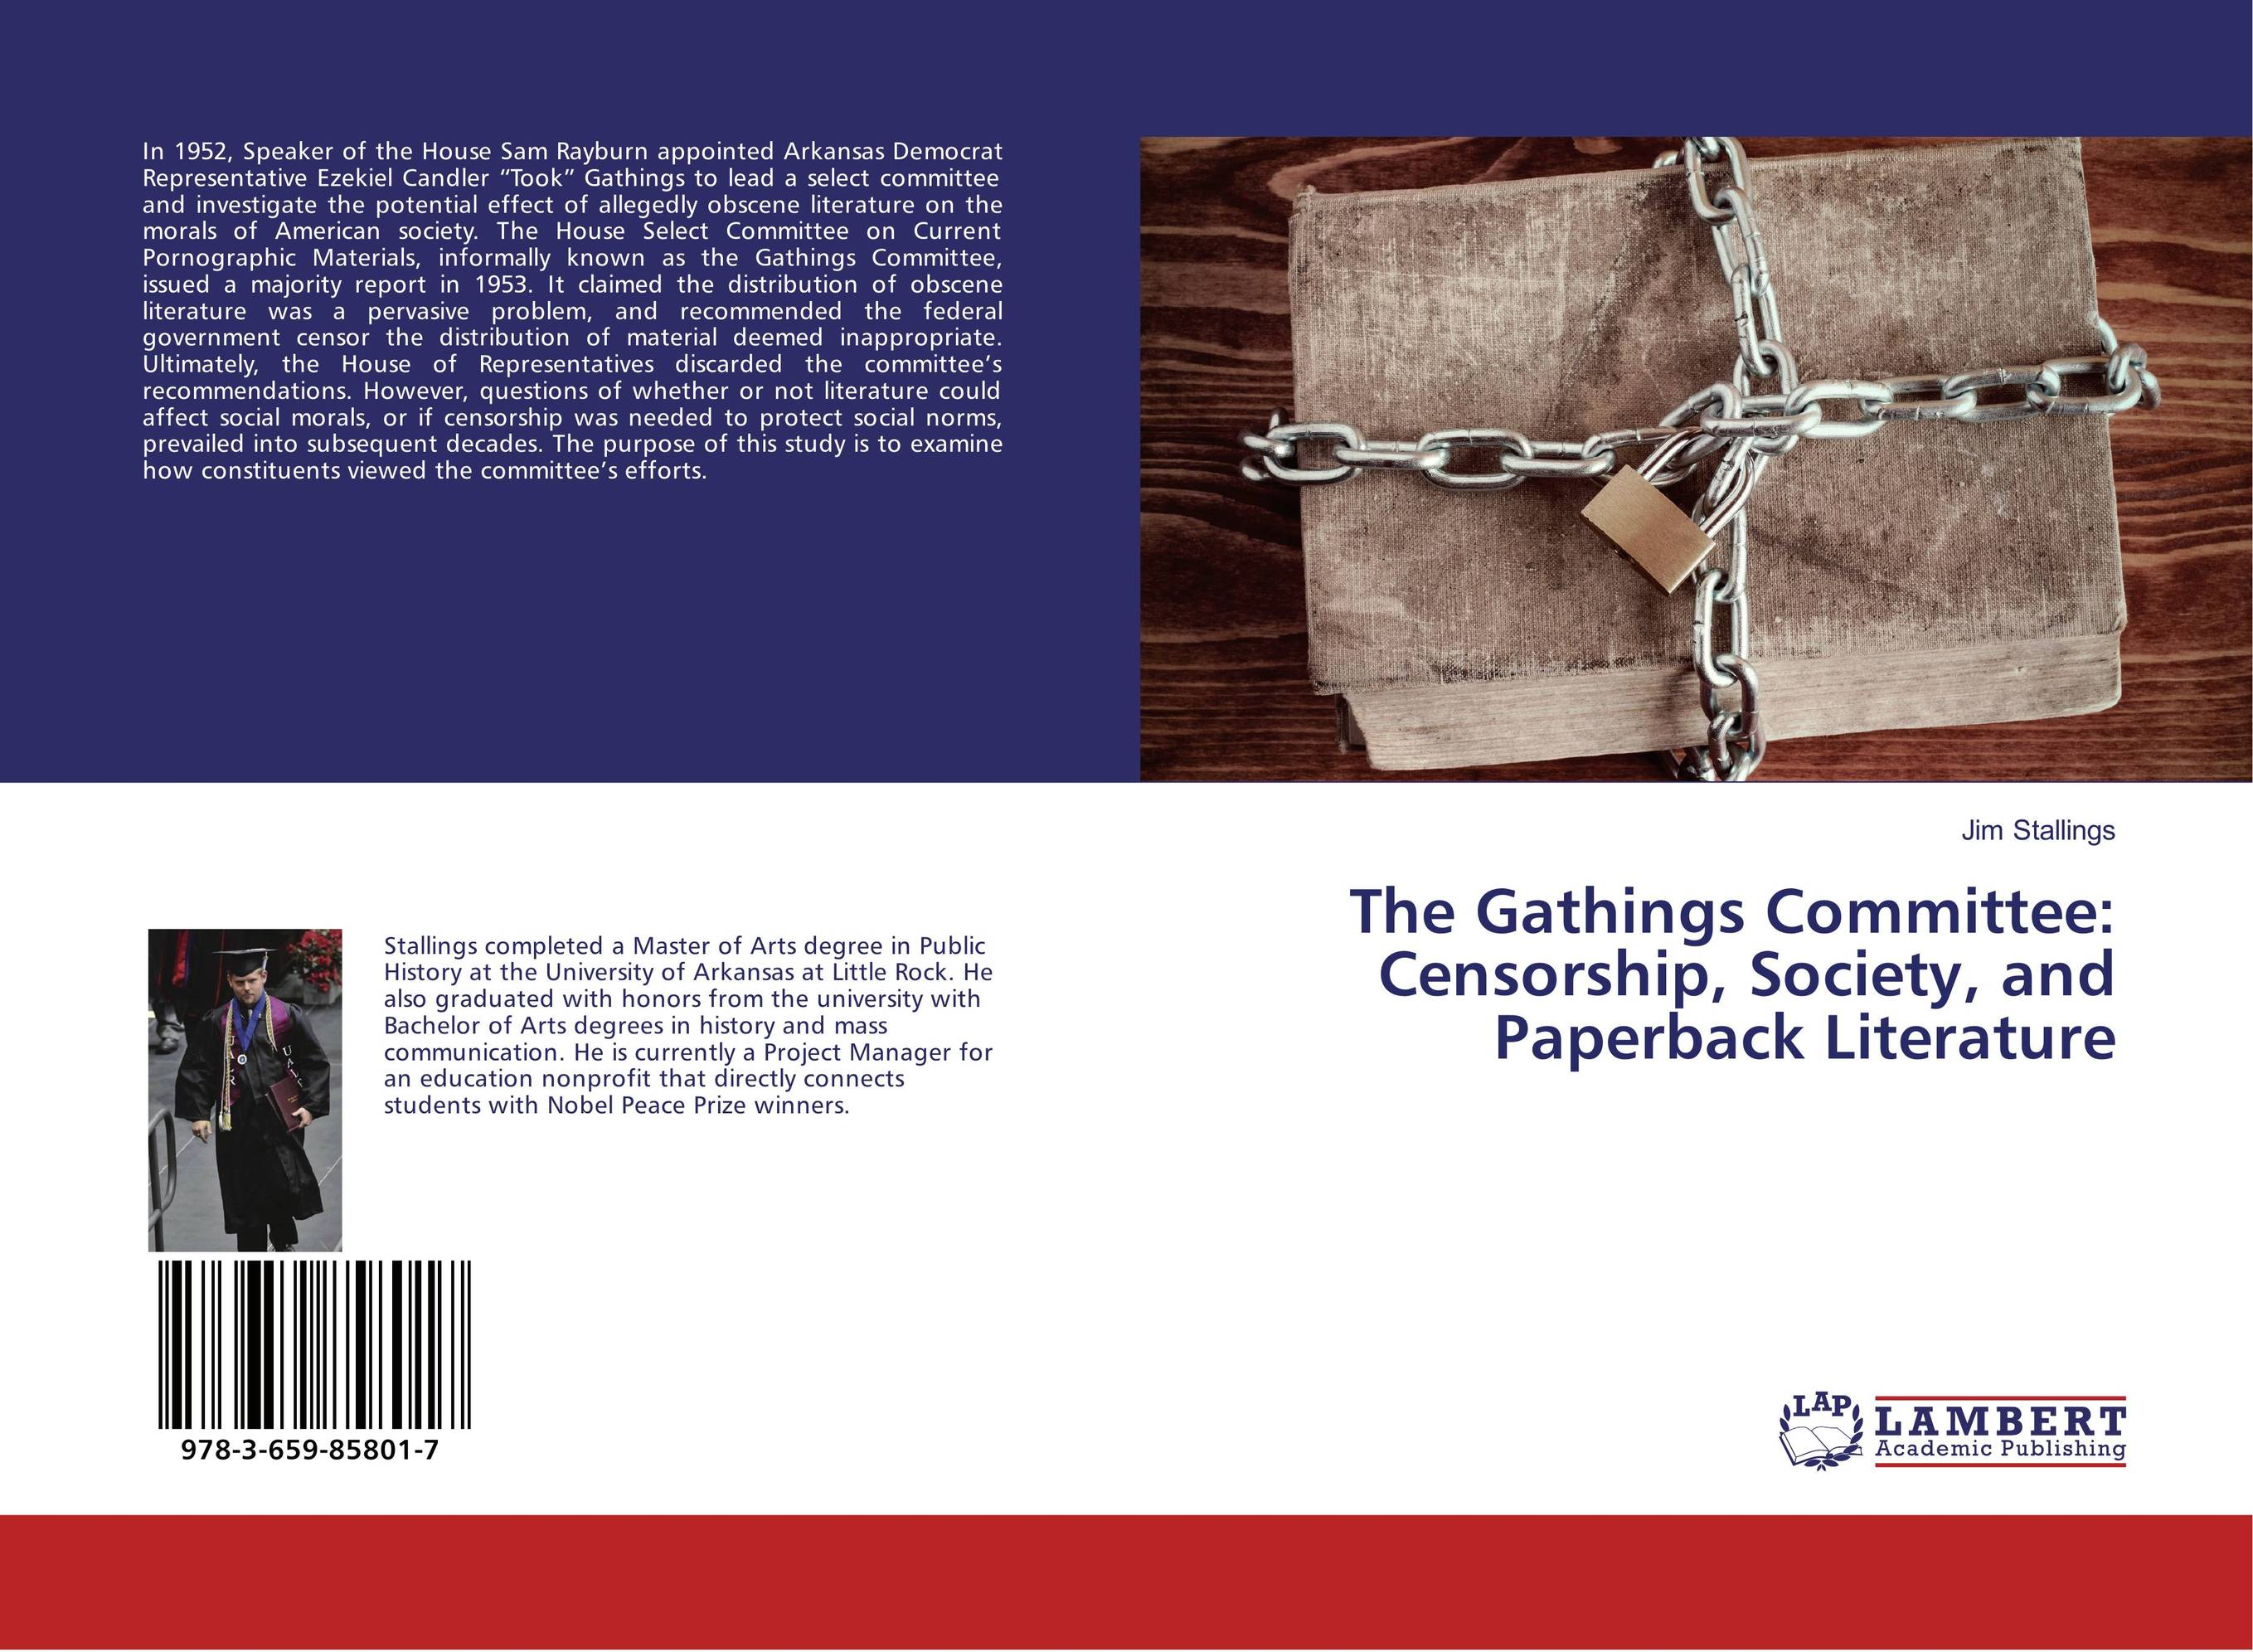 The Gathings Committee: Censorship, Society, and Paperback Literature